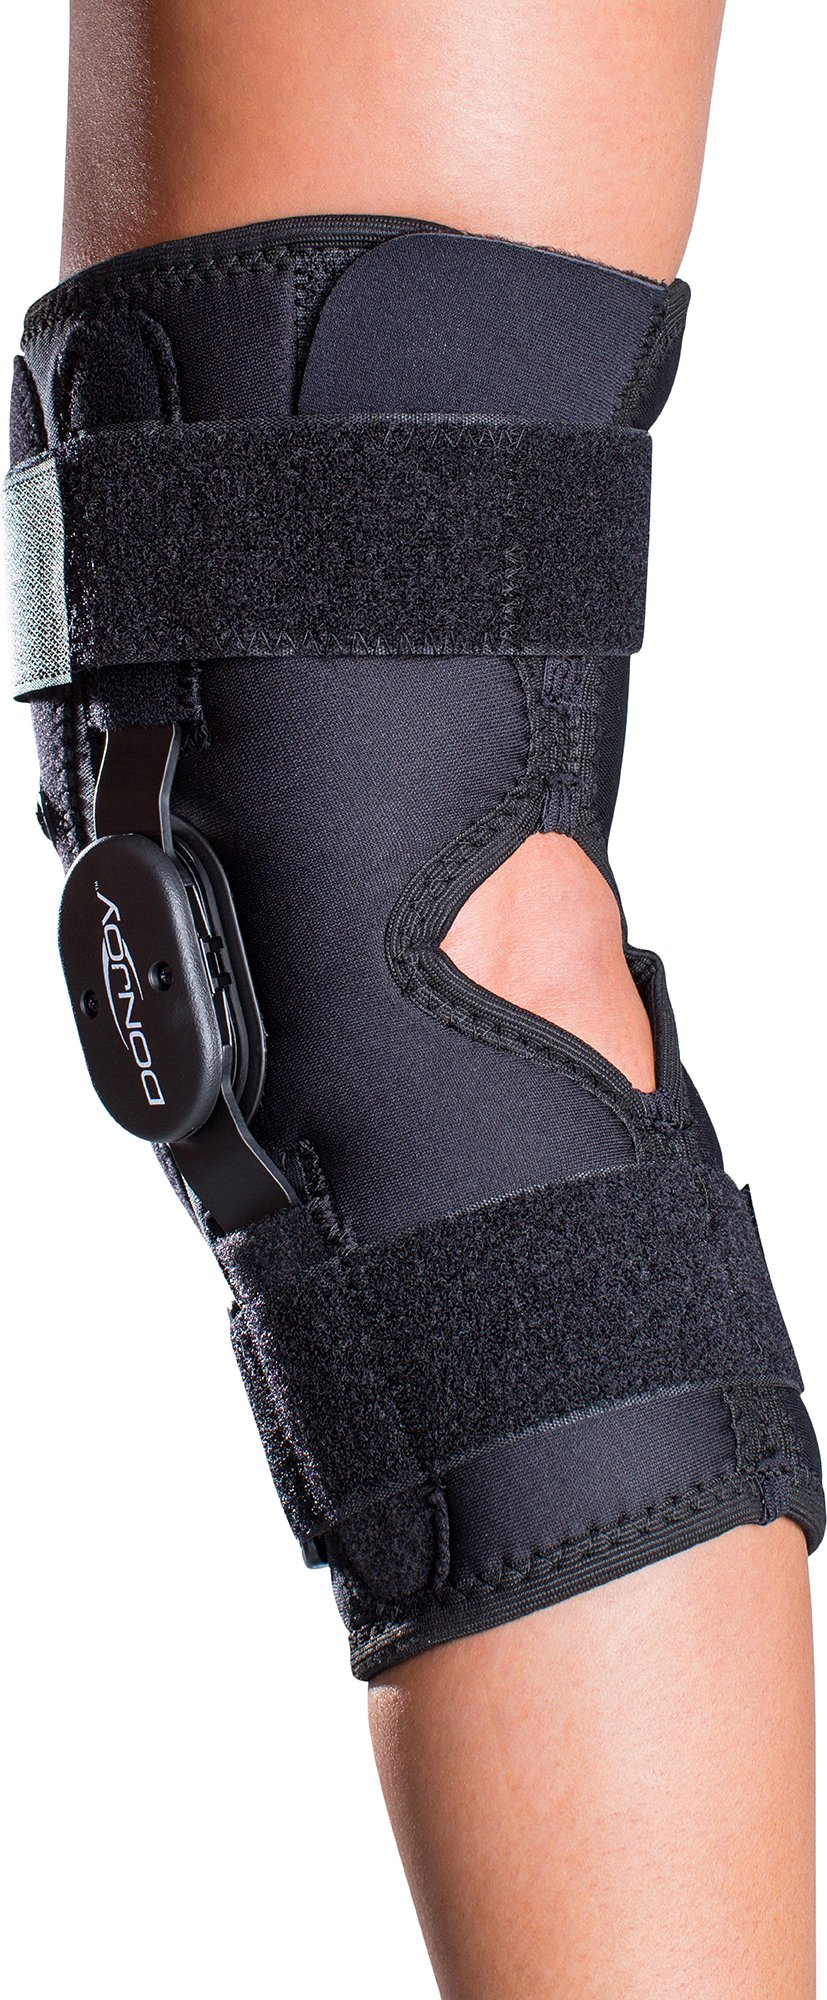 DonJoy Drytex Hinged Air Knee Brace, Small